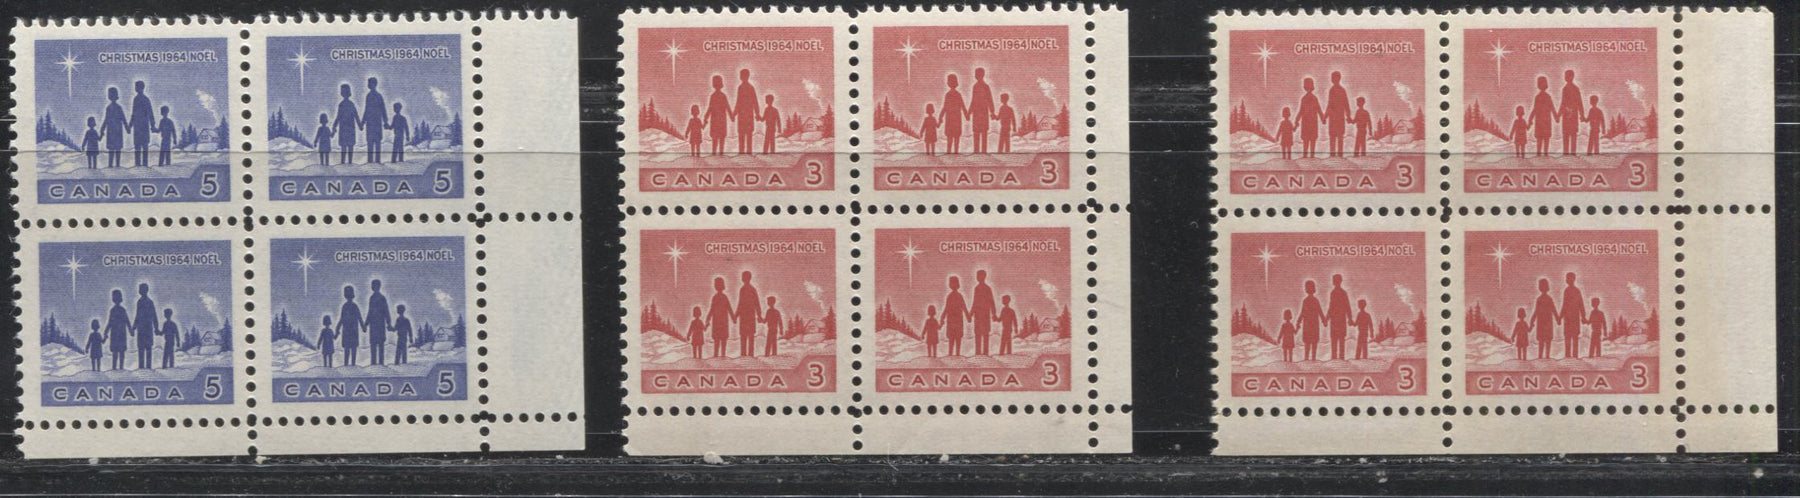 Canada #434-435i 3c Red And 5c Blue 1964 Christmas Star Of Bethlehem Issue LR Corner Blocks, DF And LF Papers. VF 80/84 NH